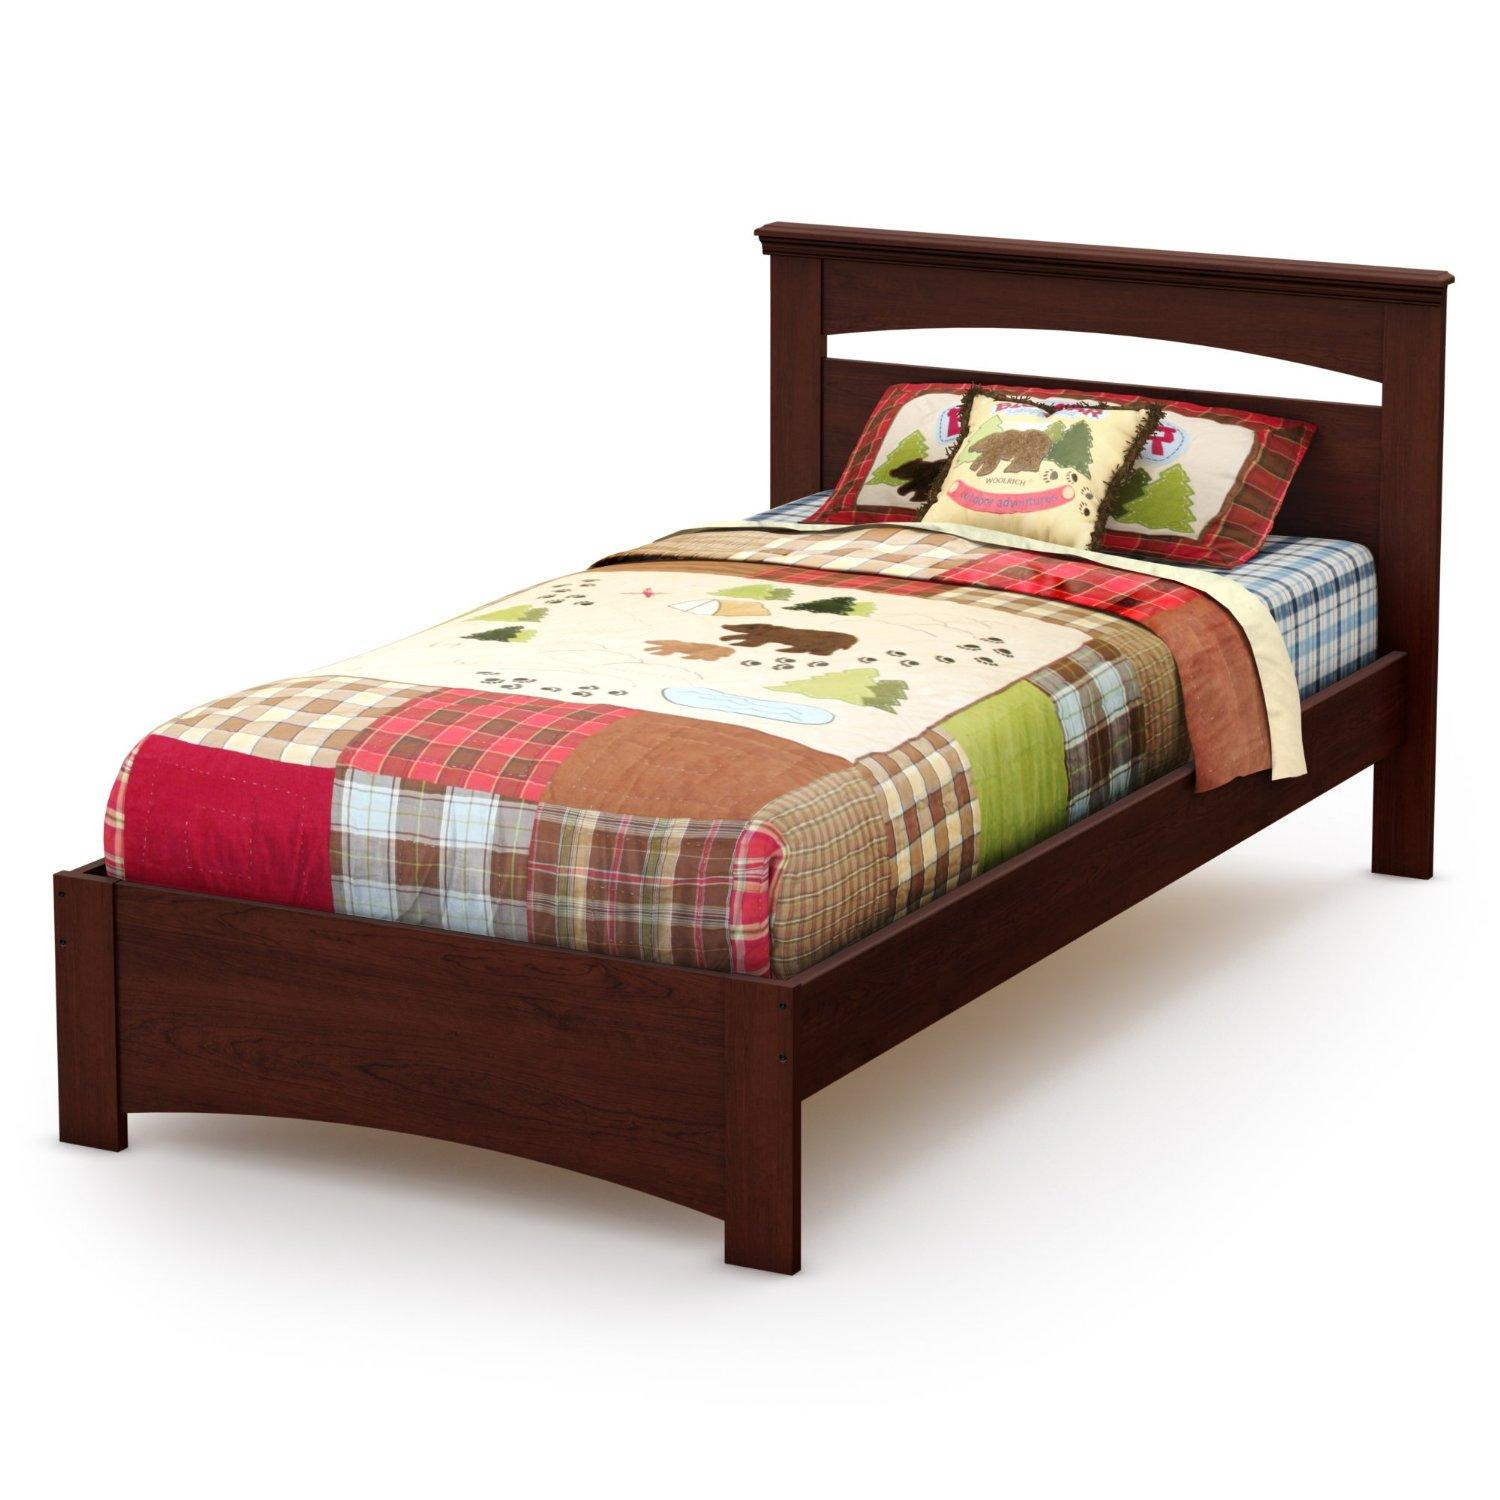 South shore libra twin bed set by oj commerce for Twin bed frame